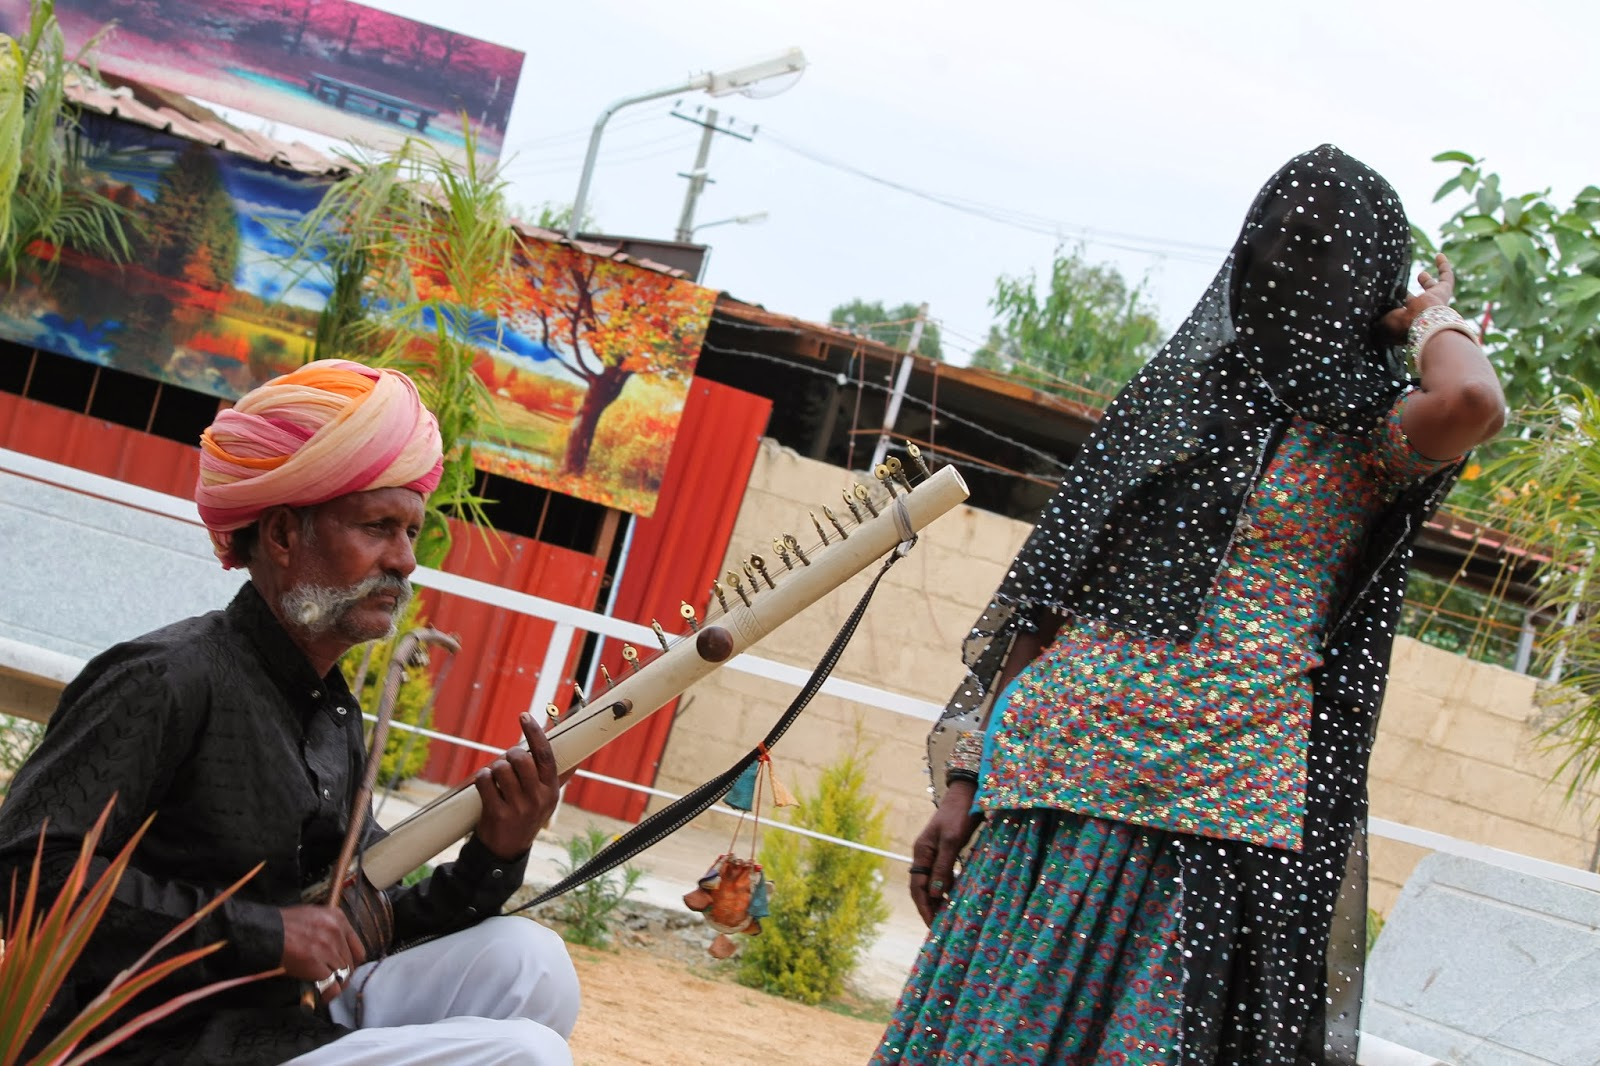 jayantiblogshere unusual occupations nomad singers of folklore unusual occupations this time features a lesser known artiste from the same genre narayan bhopa and his wife mitwa bhopi who perform at different tourist